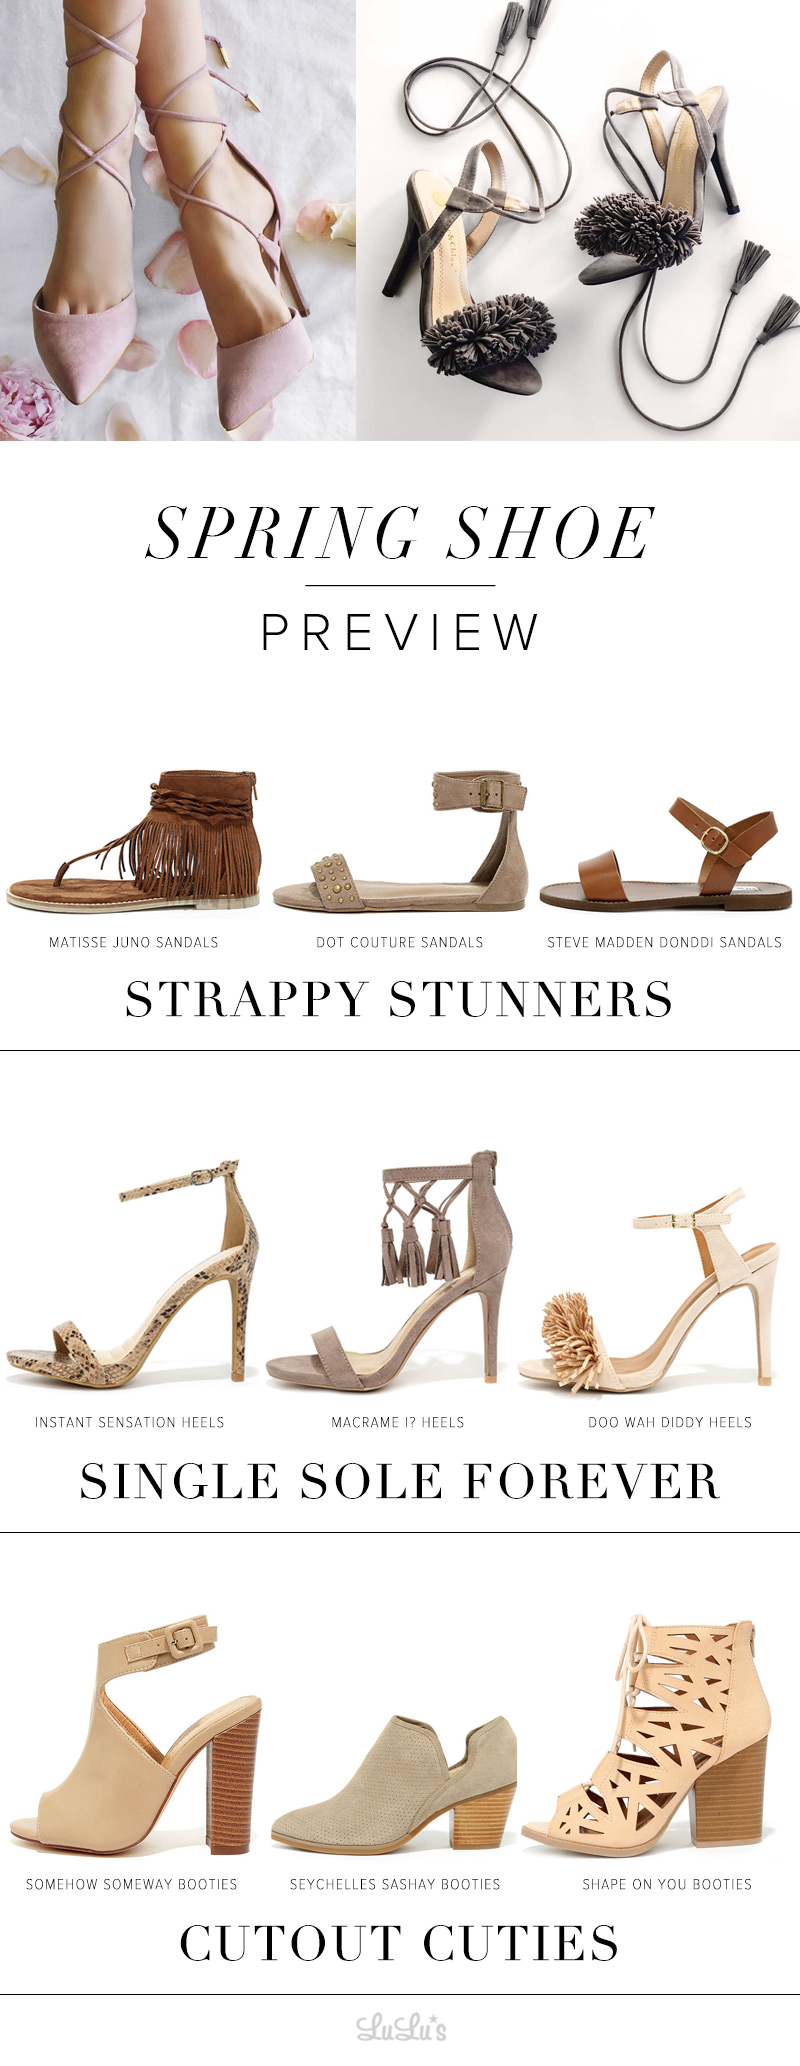 Spring Shoe Preview